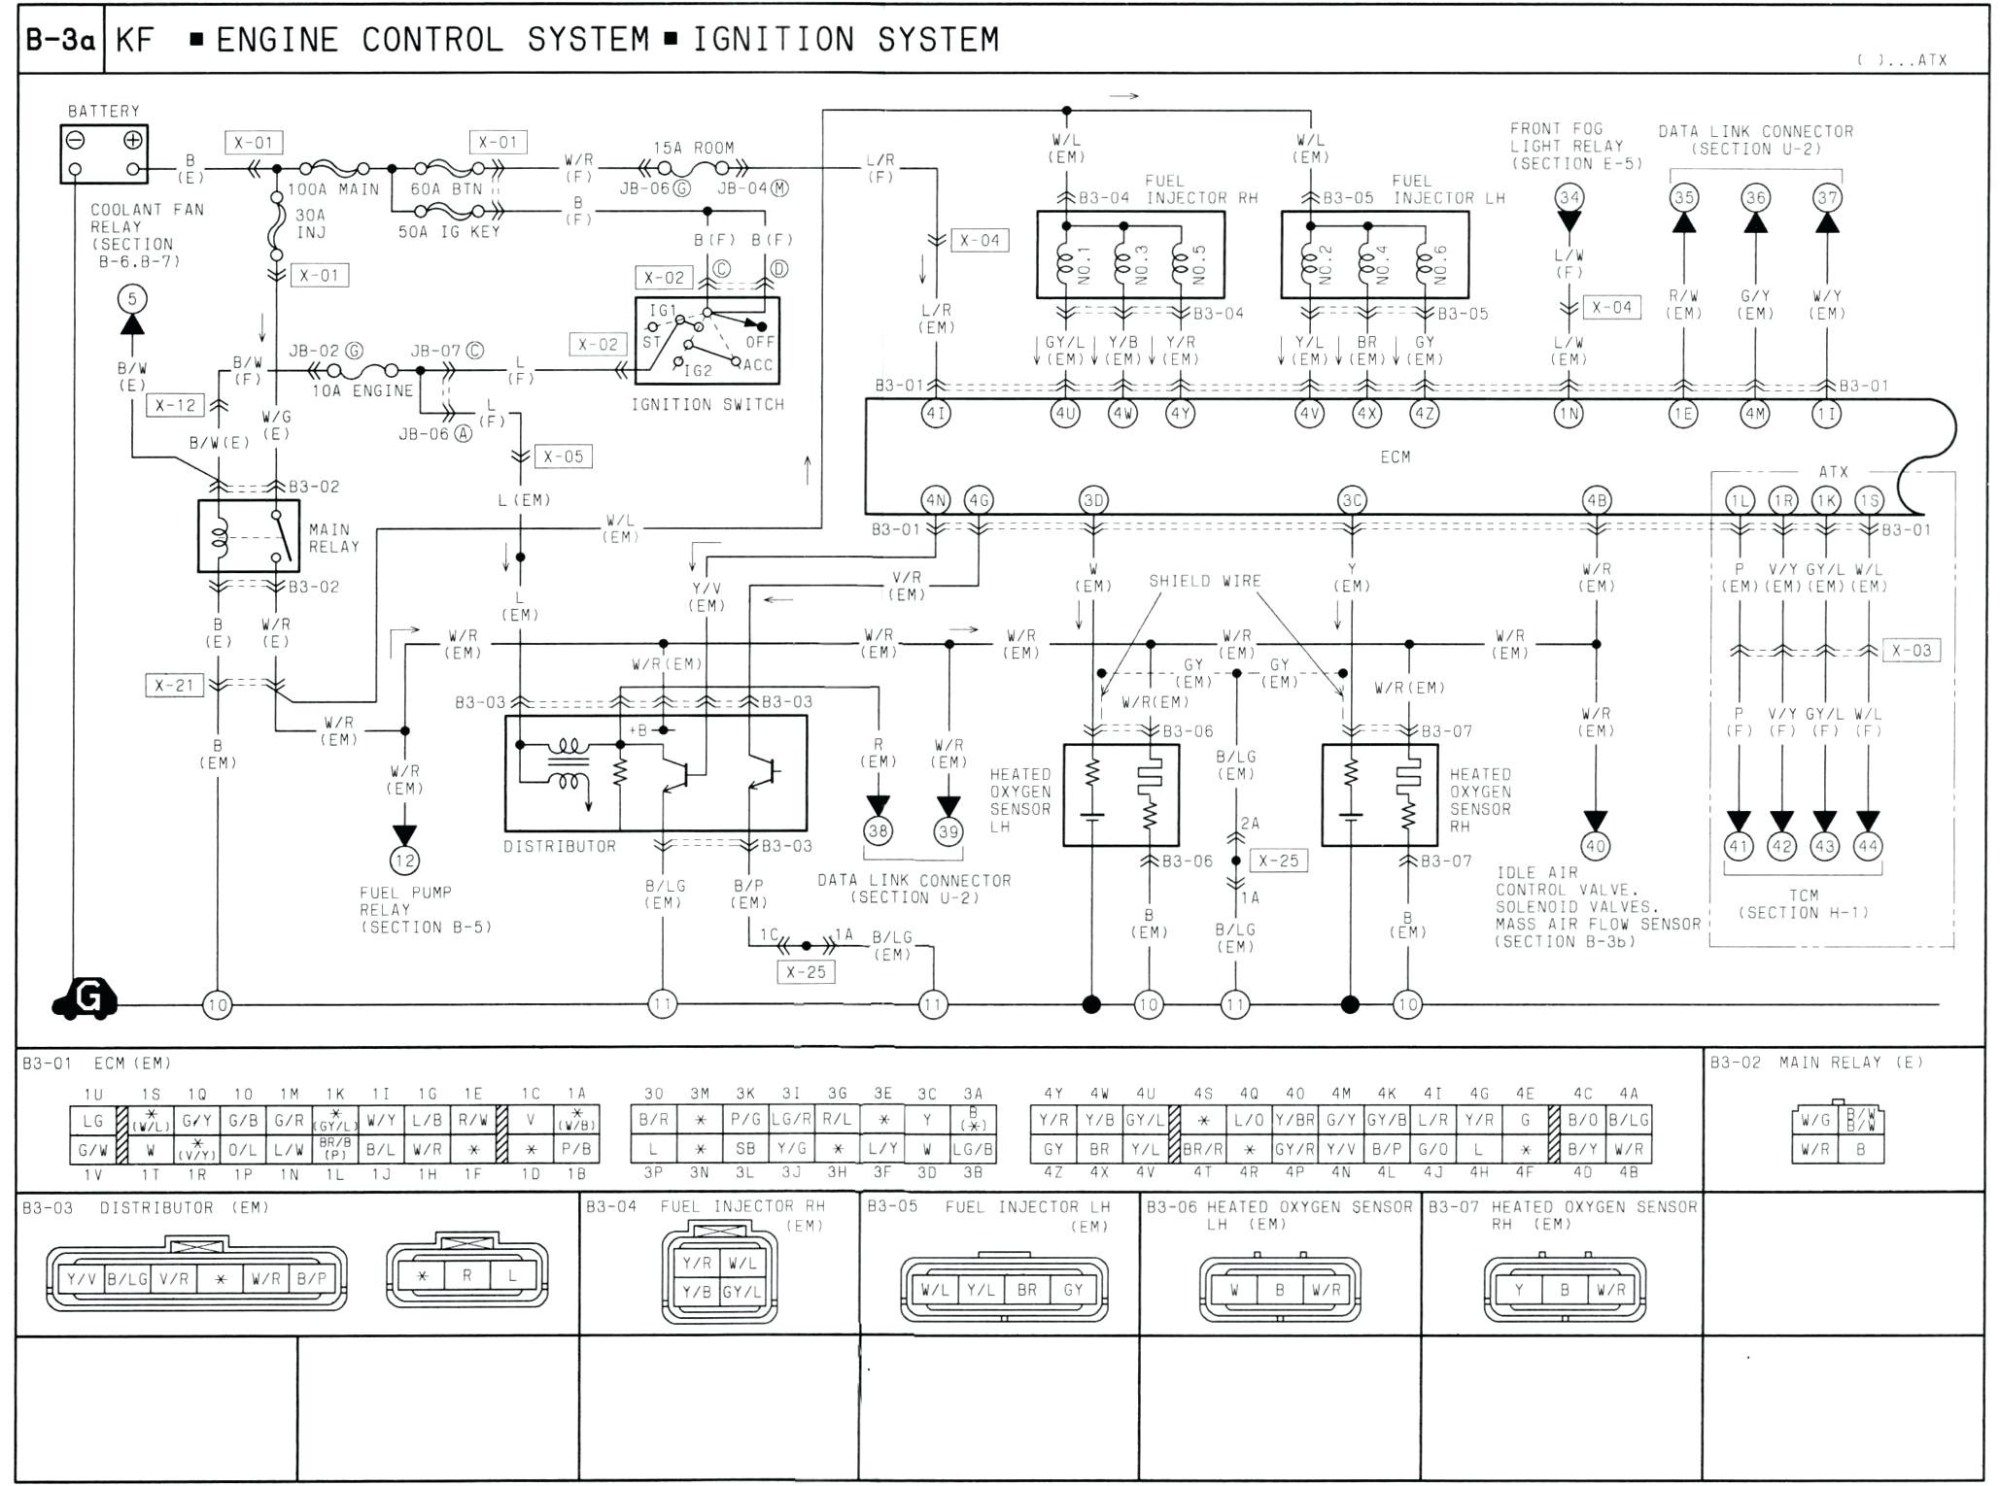 hight resolution of mx5 engine bay diagram mazda 626 engine schematic find wiring diagram of mx5 engine bay